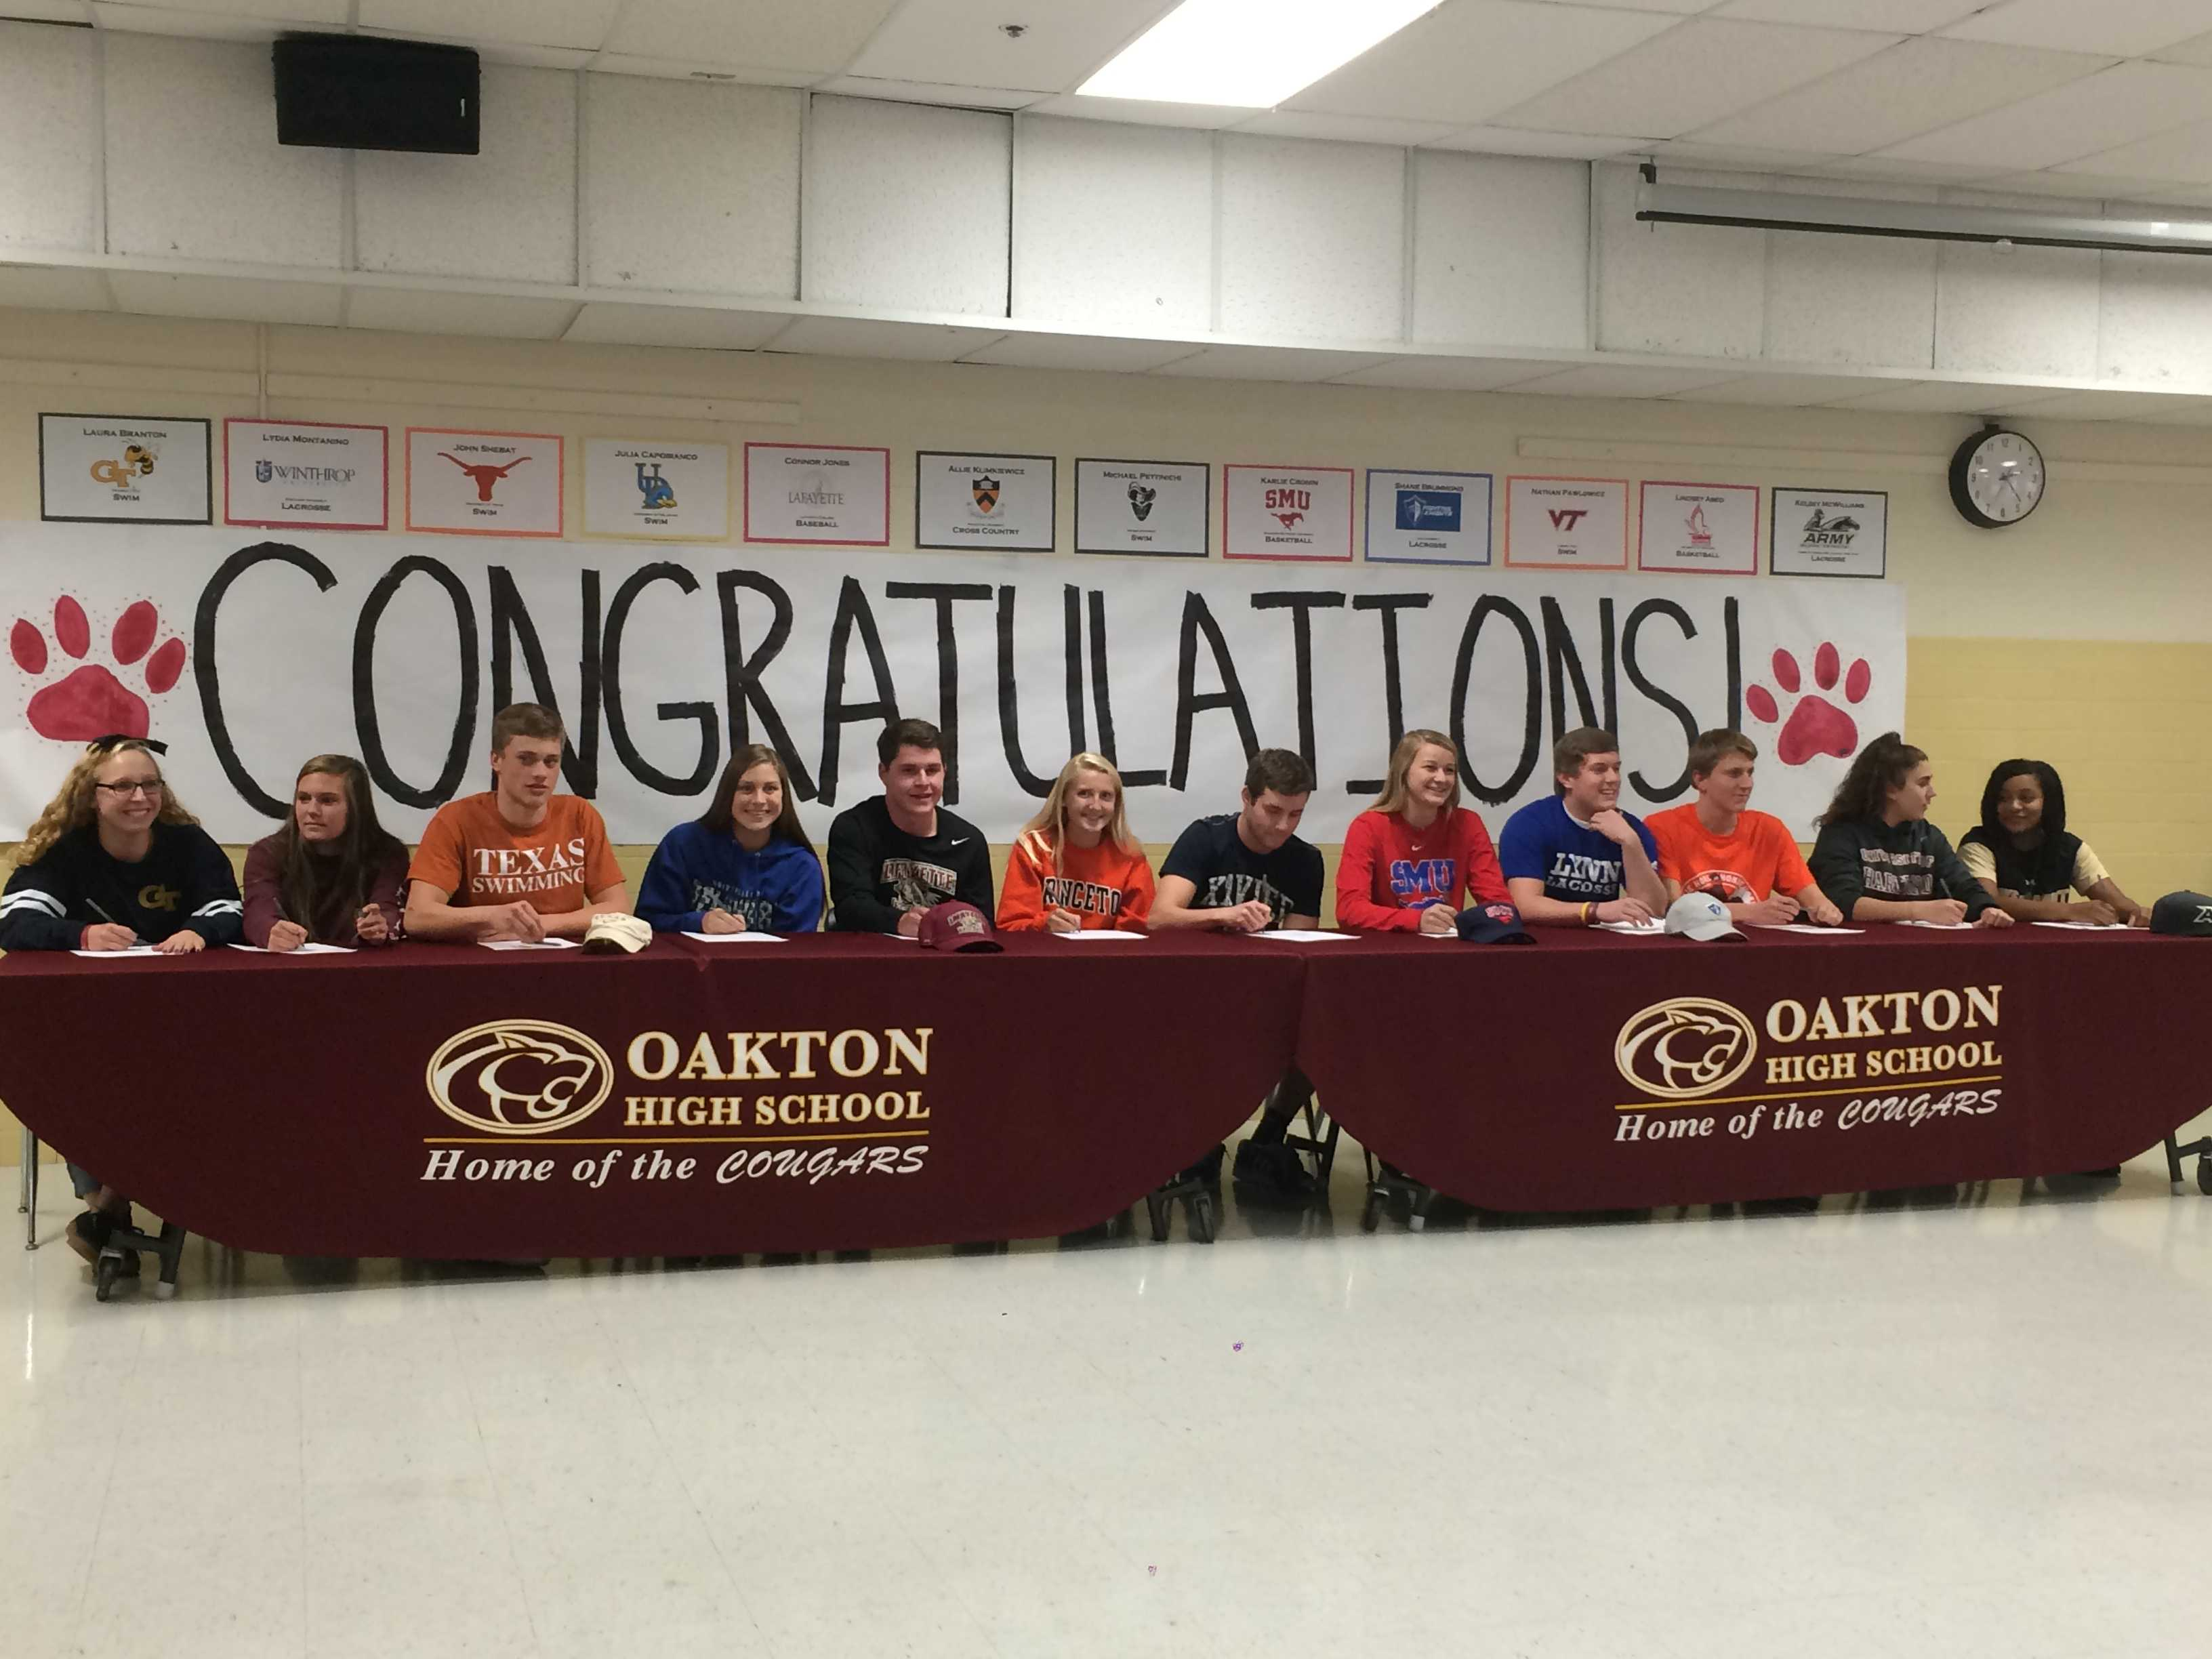 12 of Oakton's athletes participated in the national signing event